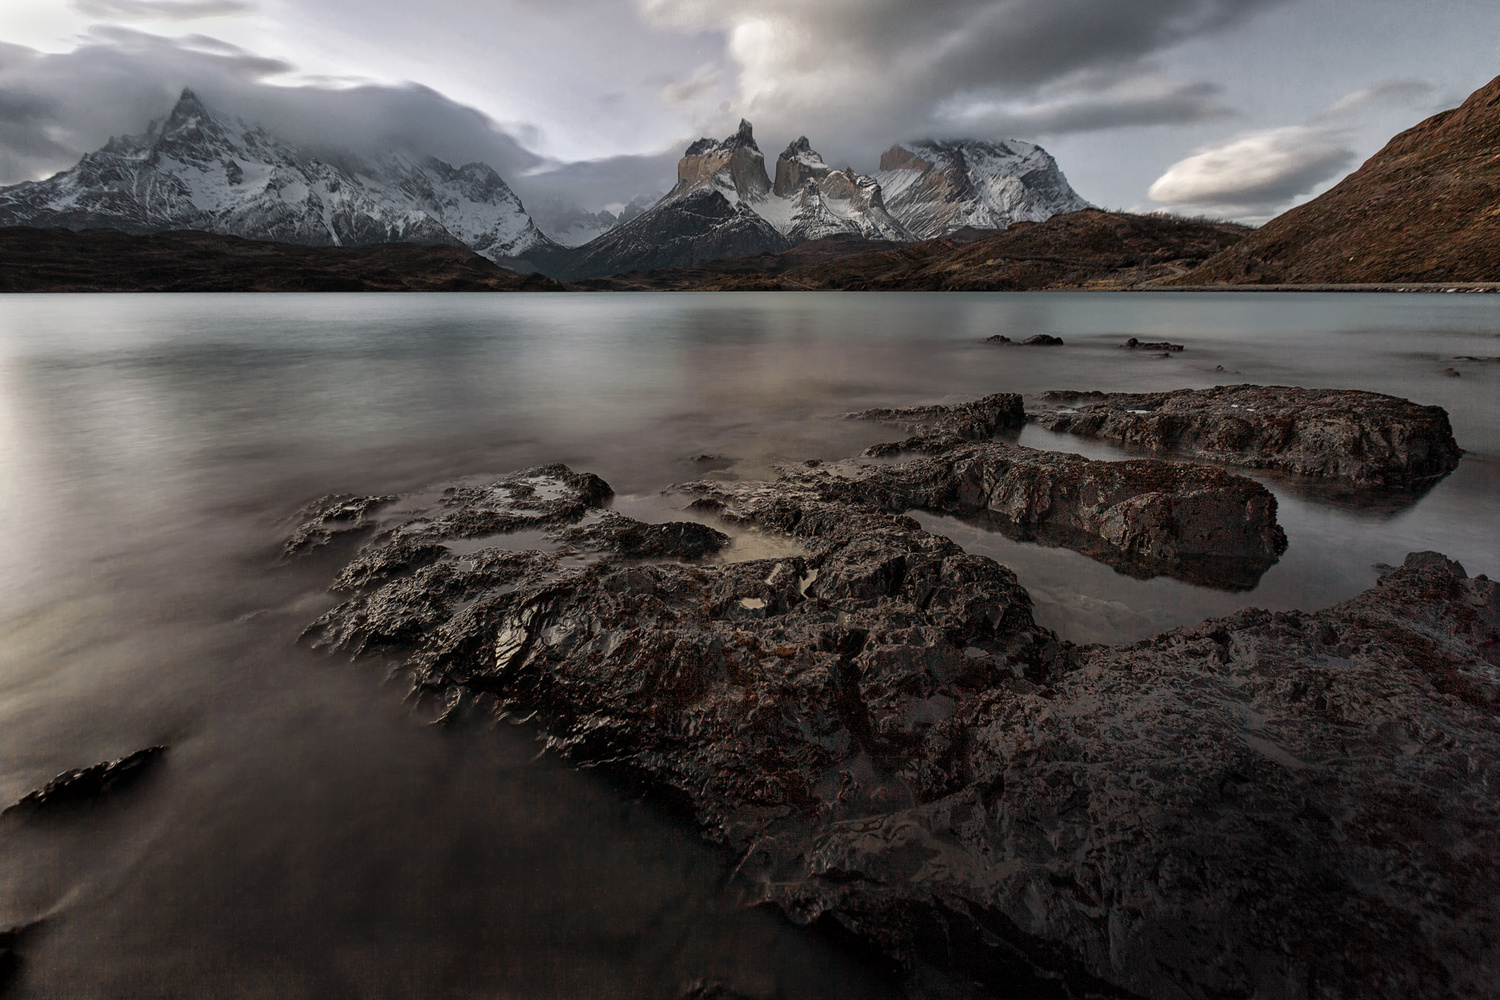 Winter in Torres del Paine by Andrea Torselli